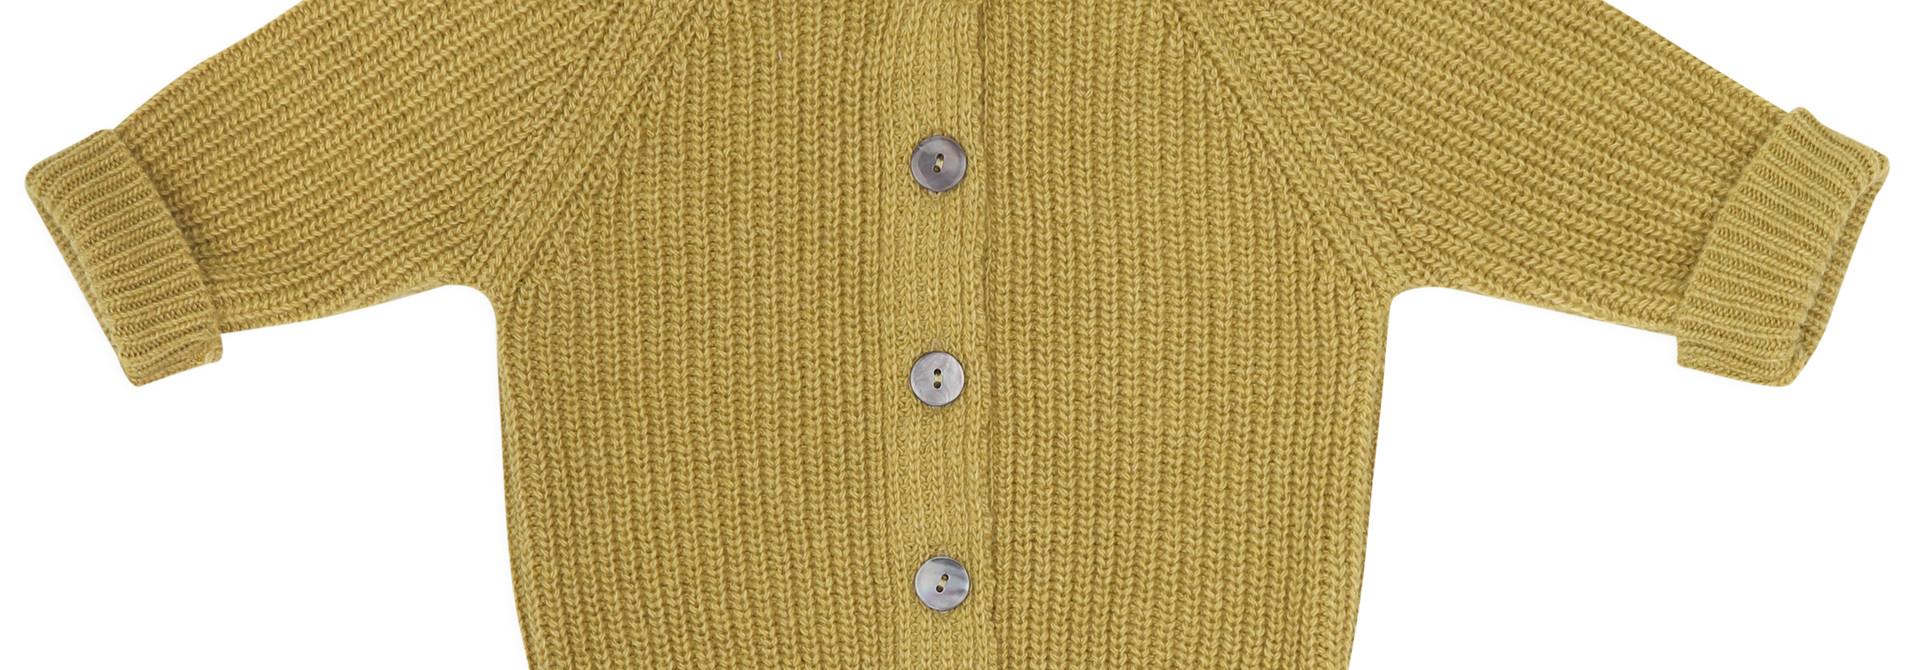 Cashmere-blend knit cardigan - avocado